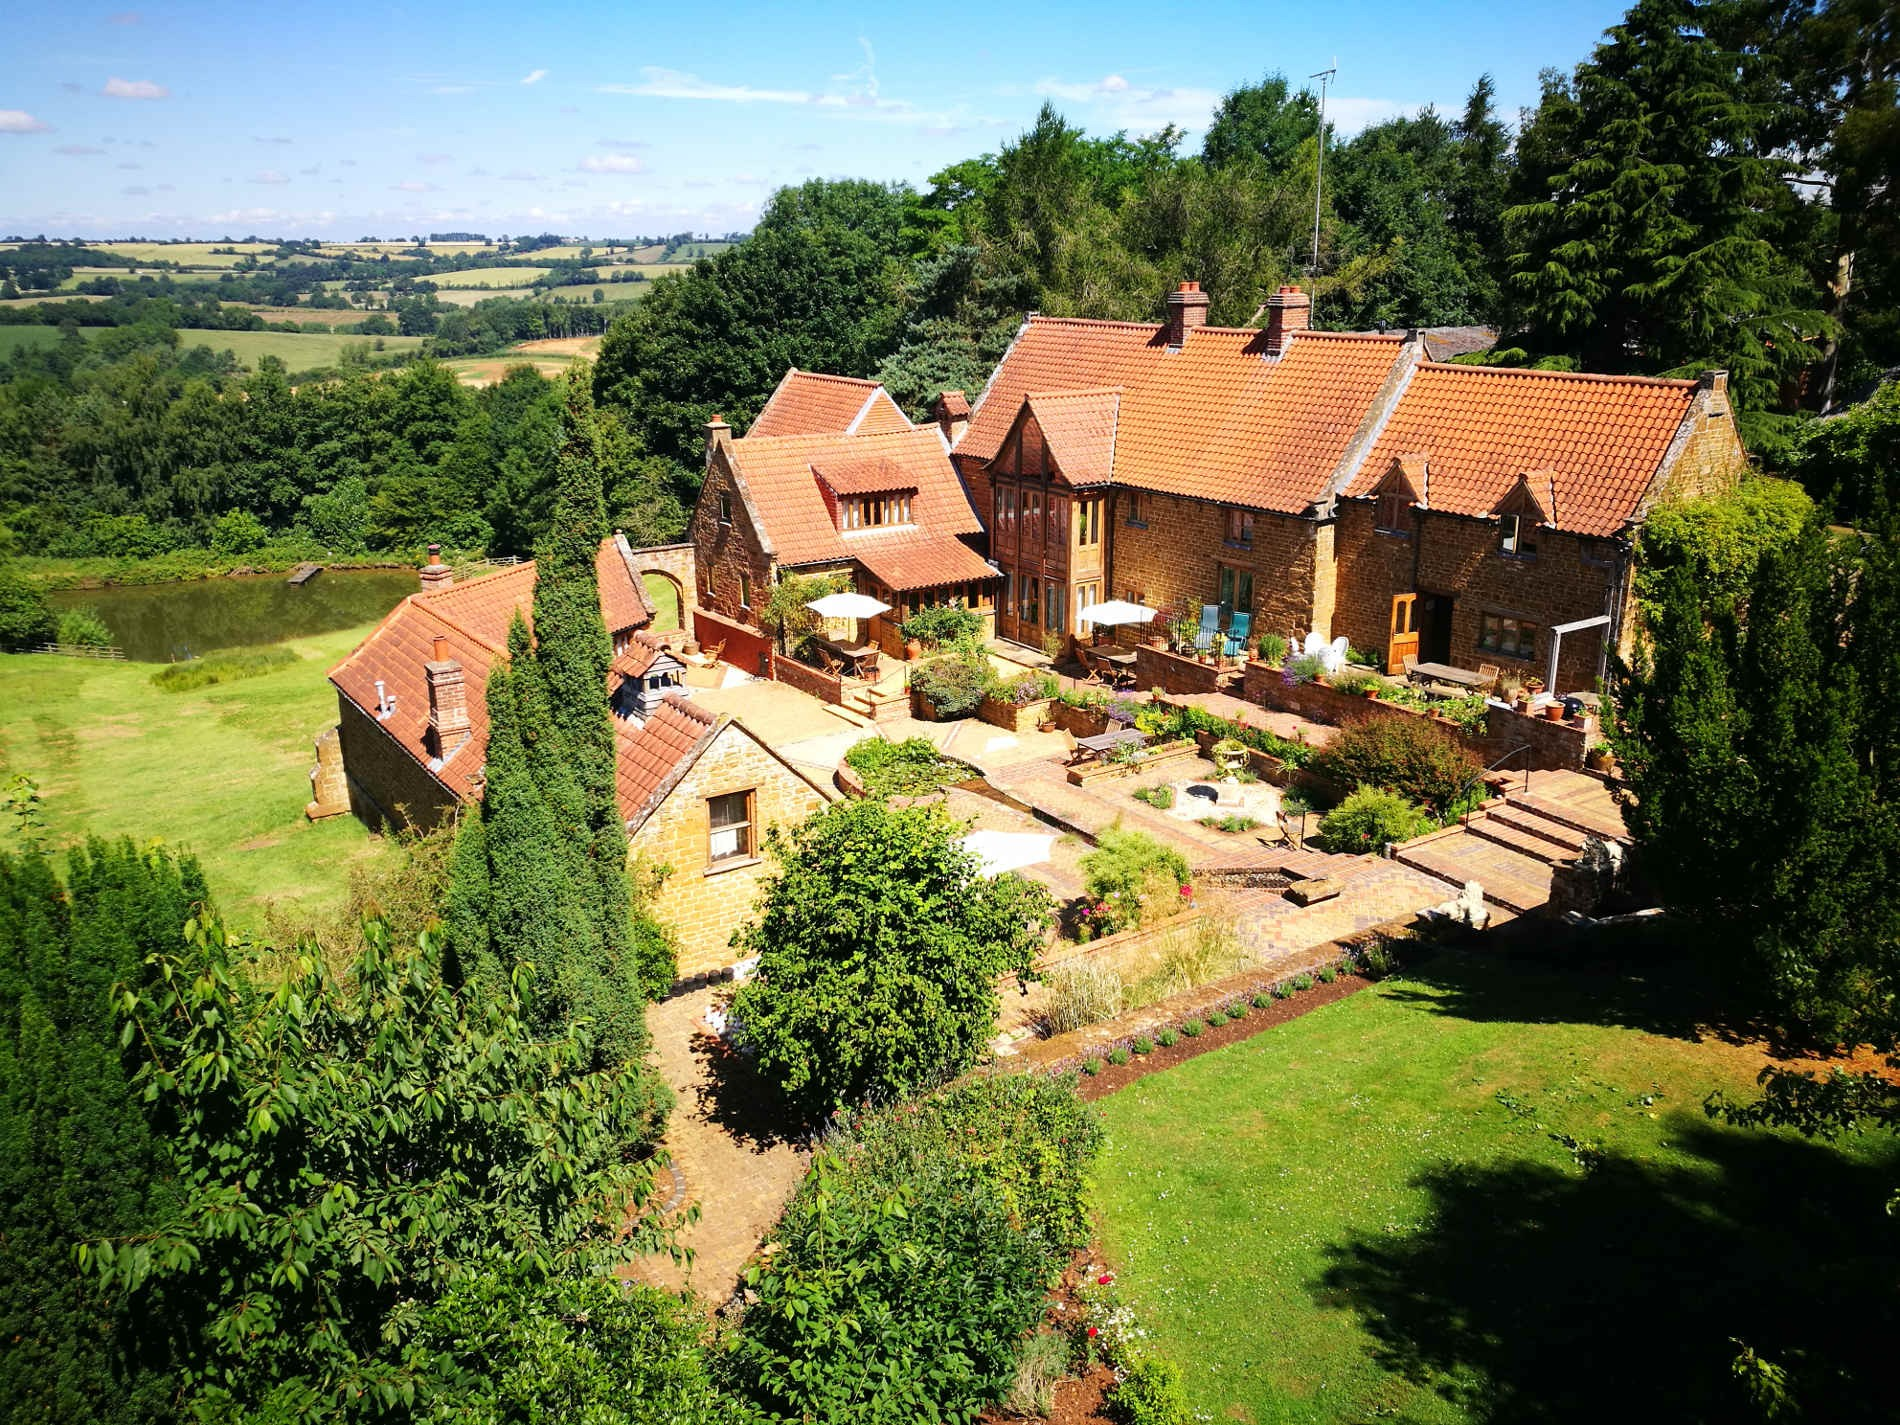 Heath Farm Holiday Cottages Overview